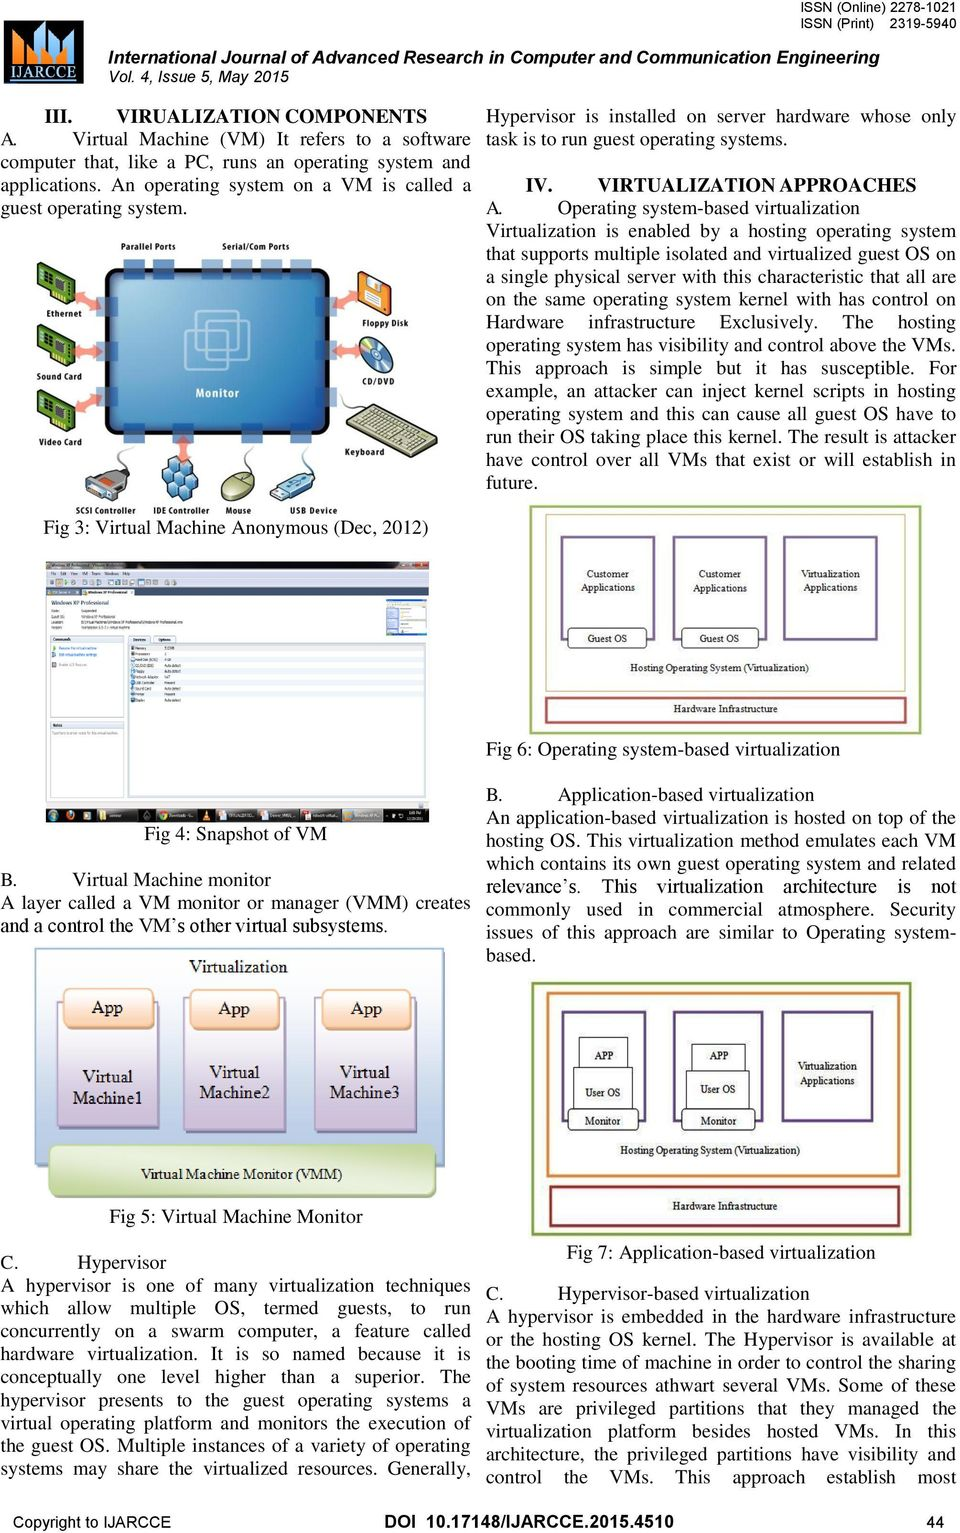 The Review of Virtualization in an Isolated Computer